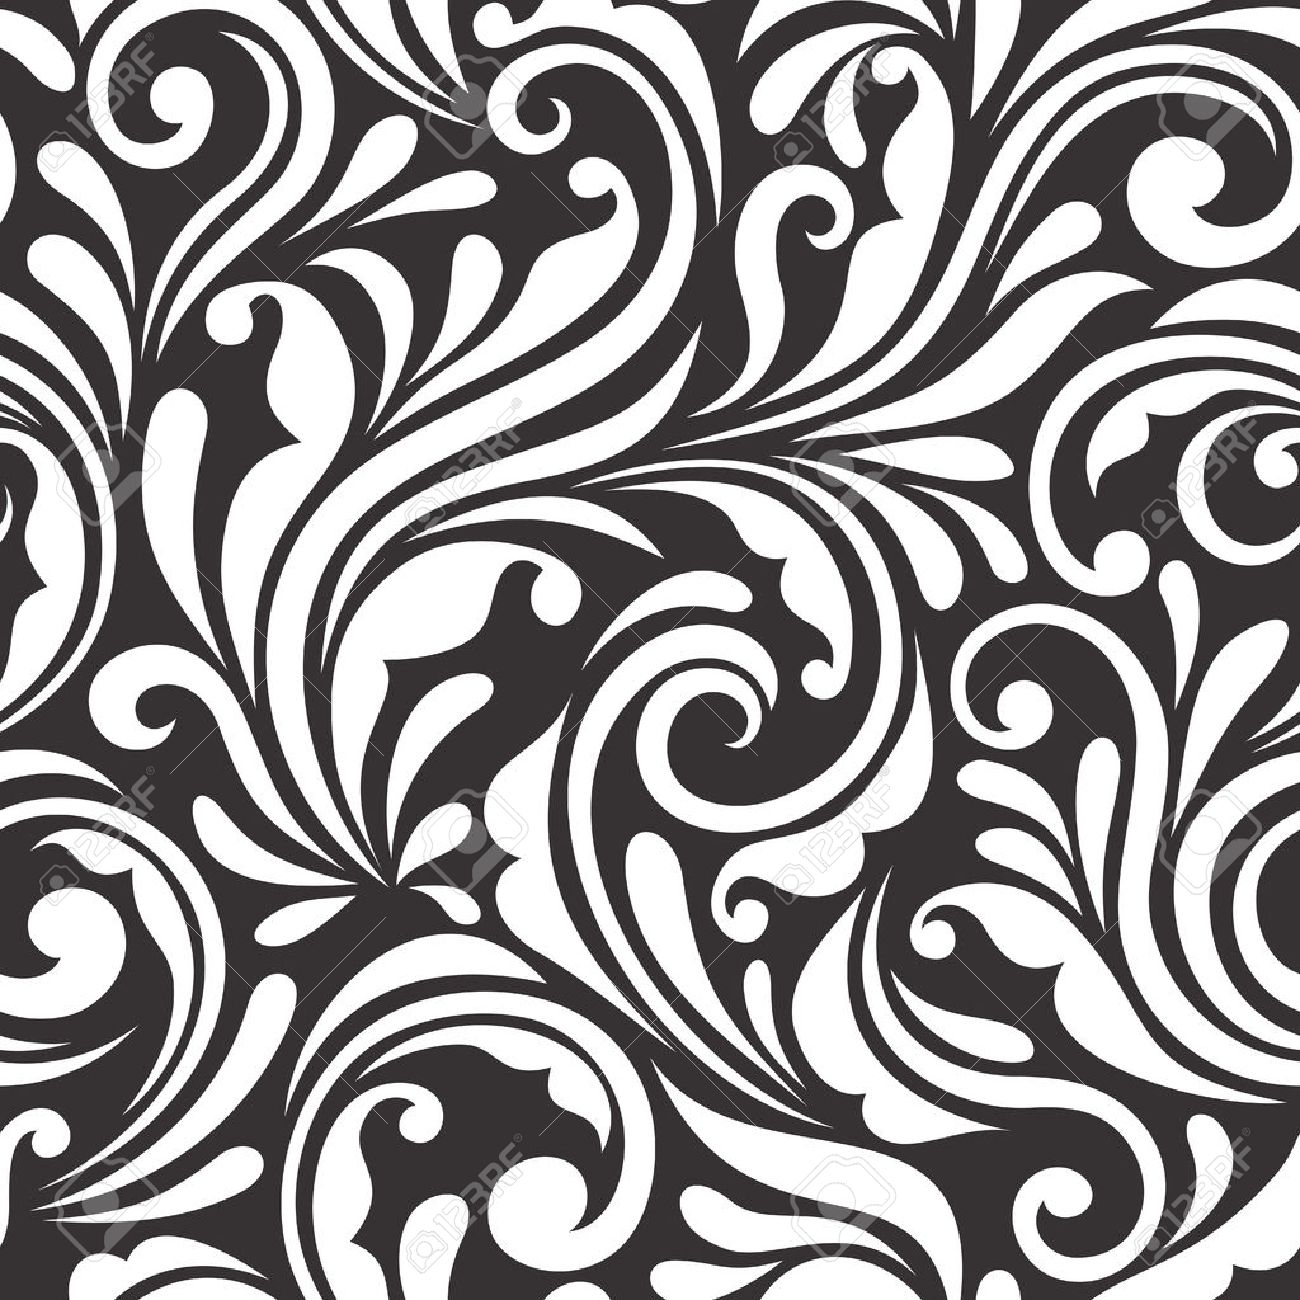 Vintage Seamless Black And White Floral Pattern Vector Illustration